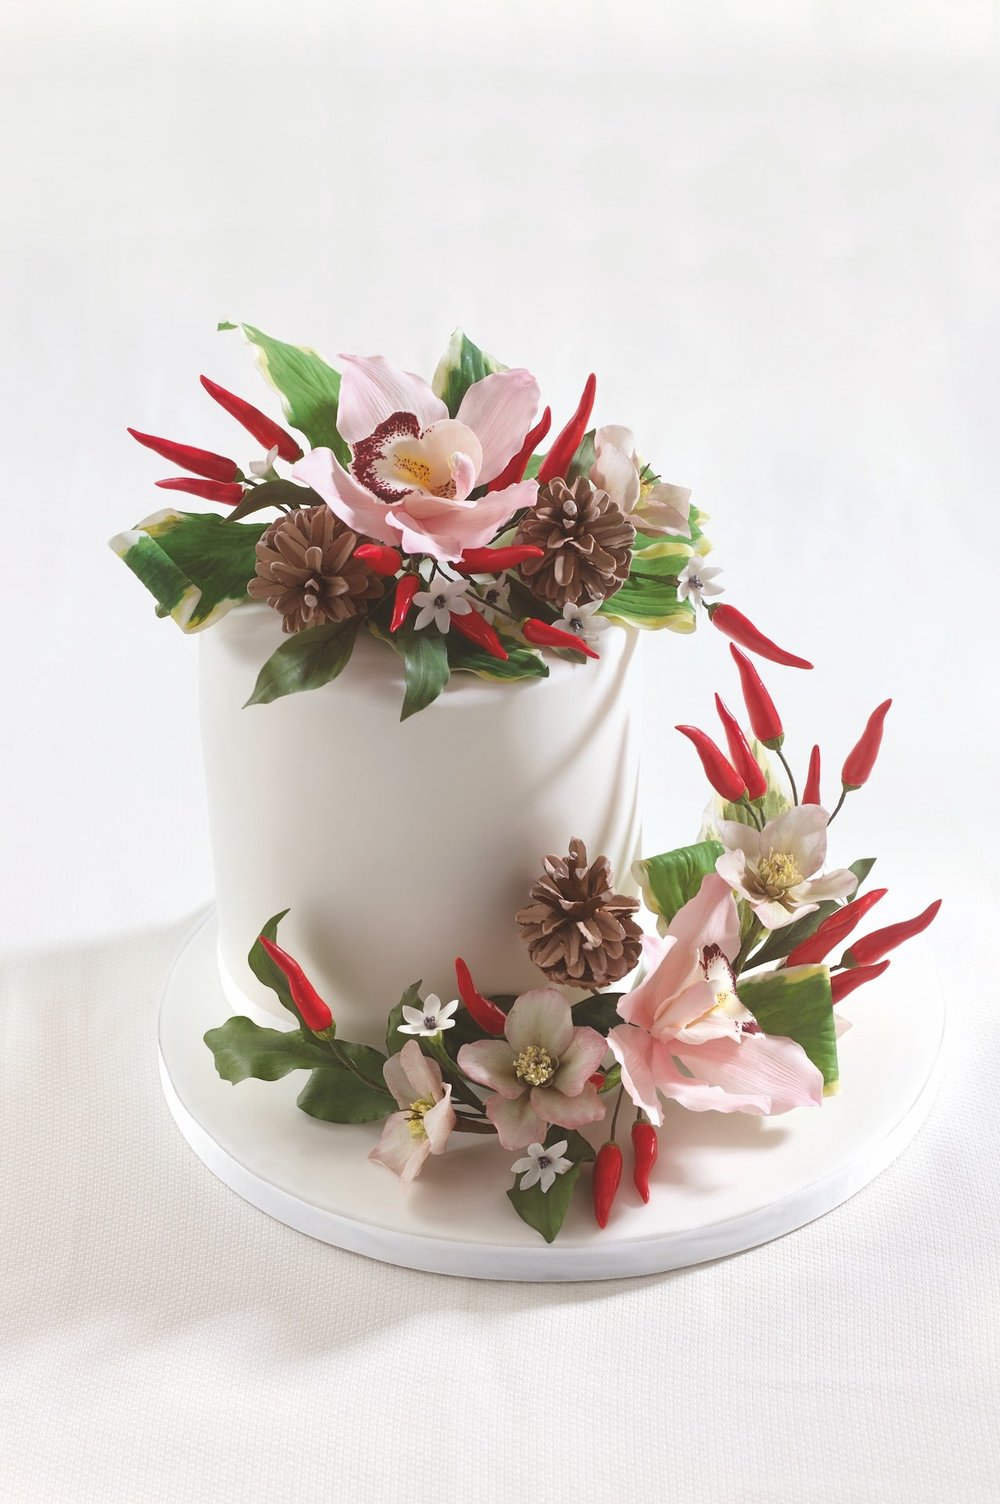 Christmas Delights from The Kew Book of Sugar flowers.jpg